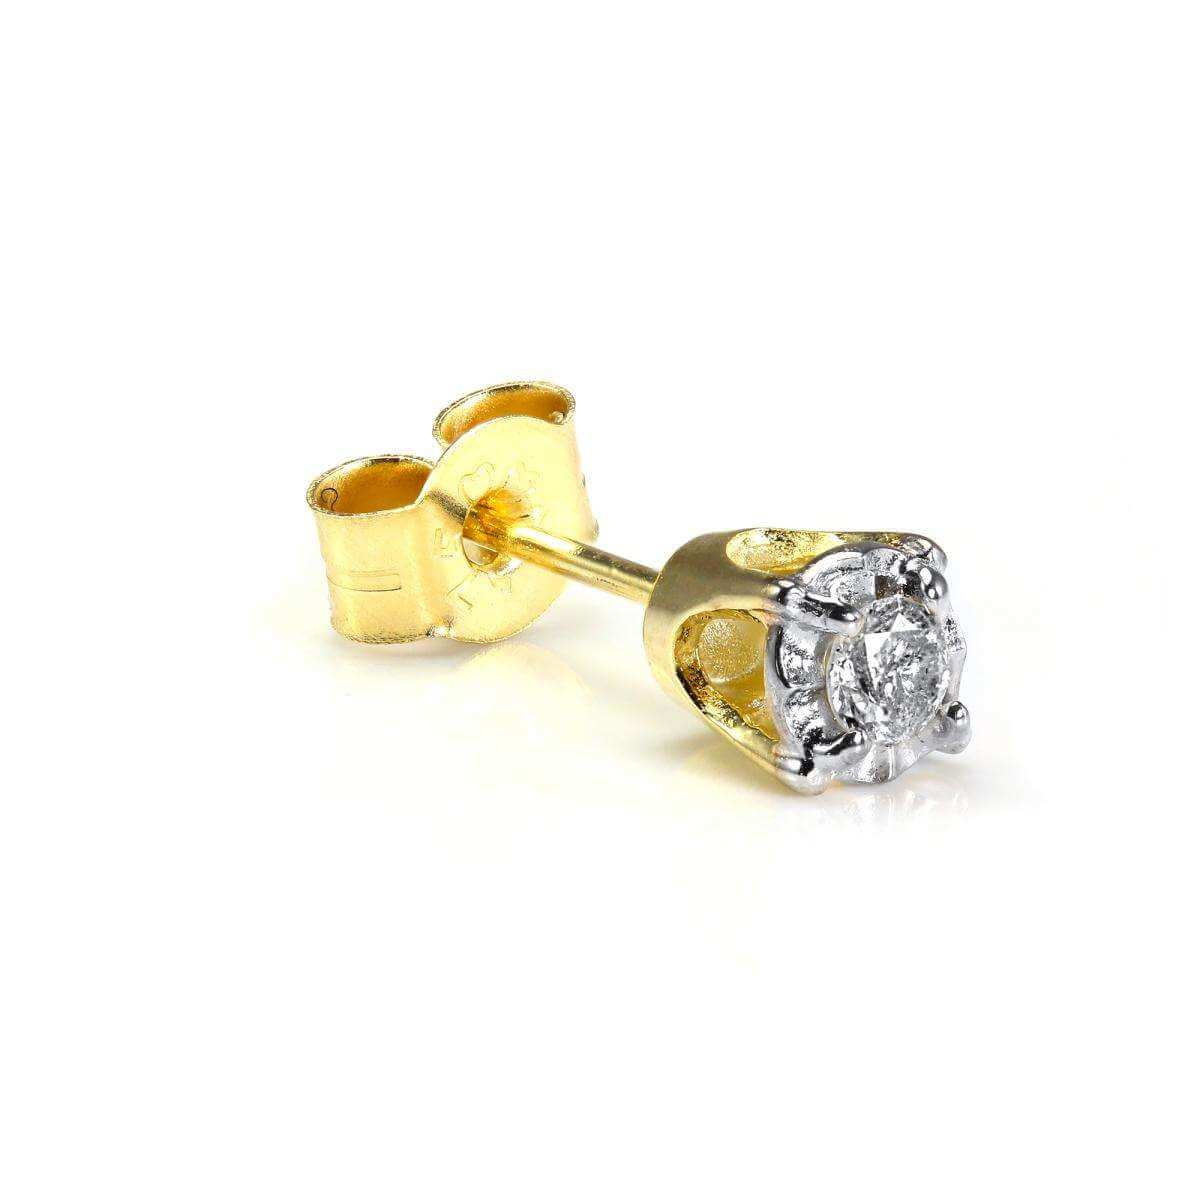 9ct Gold 0.05ct Diamond Square Mens Ear Stud Earring